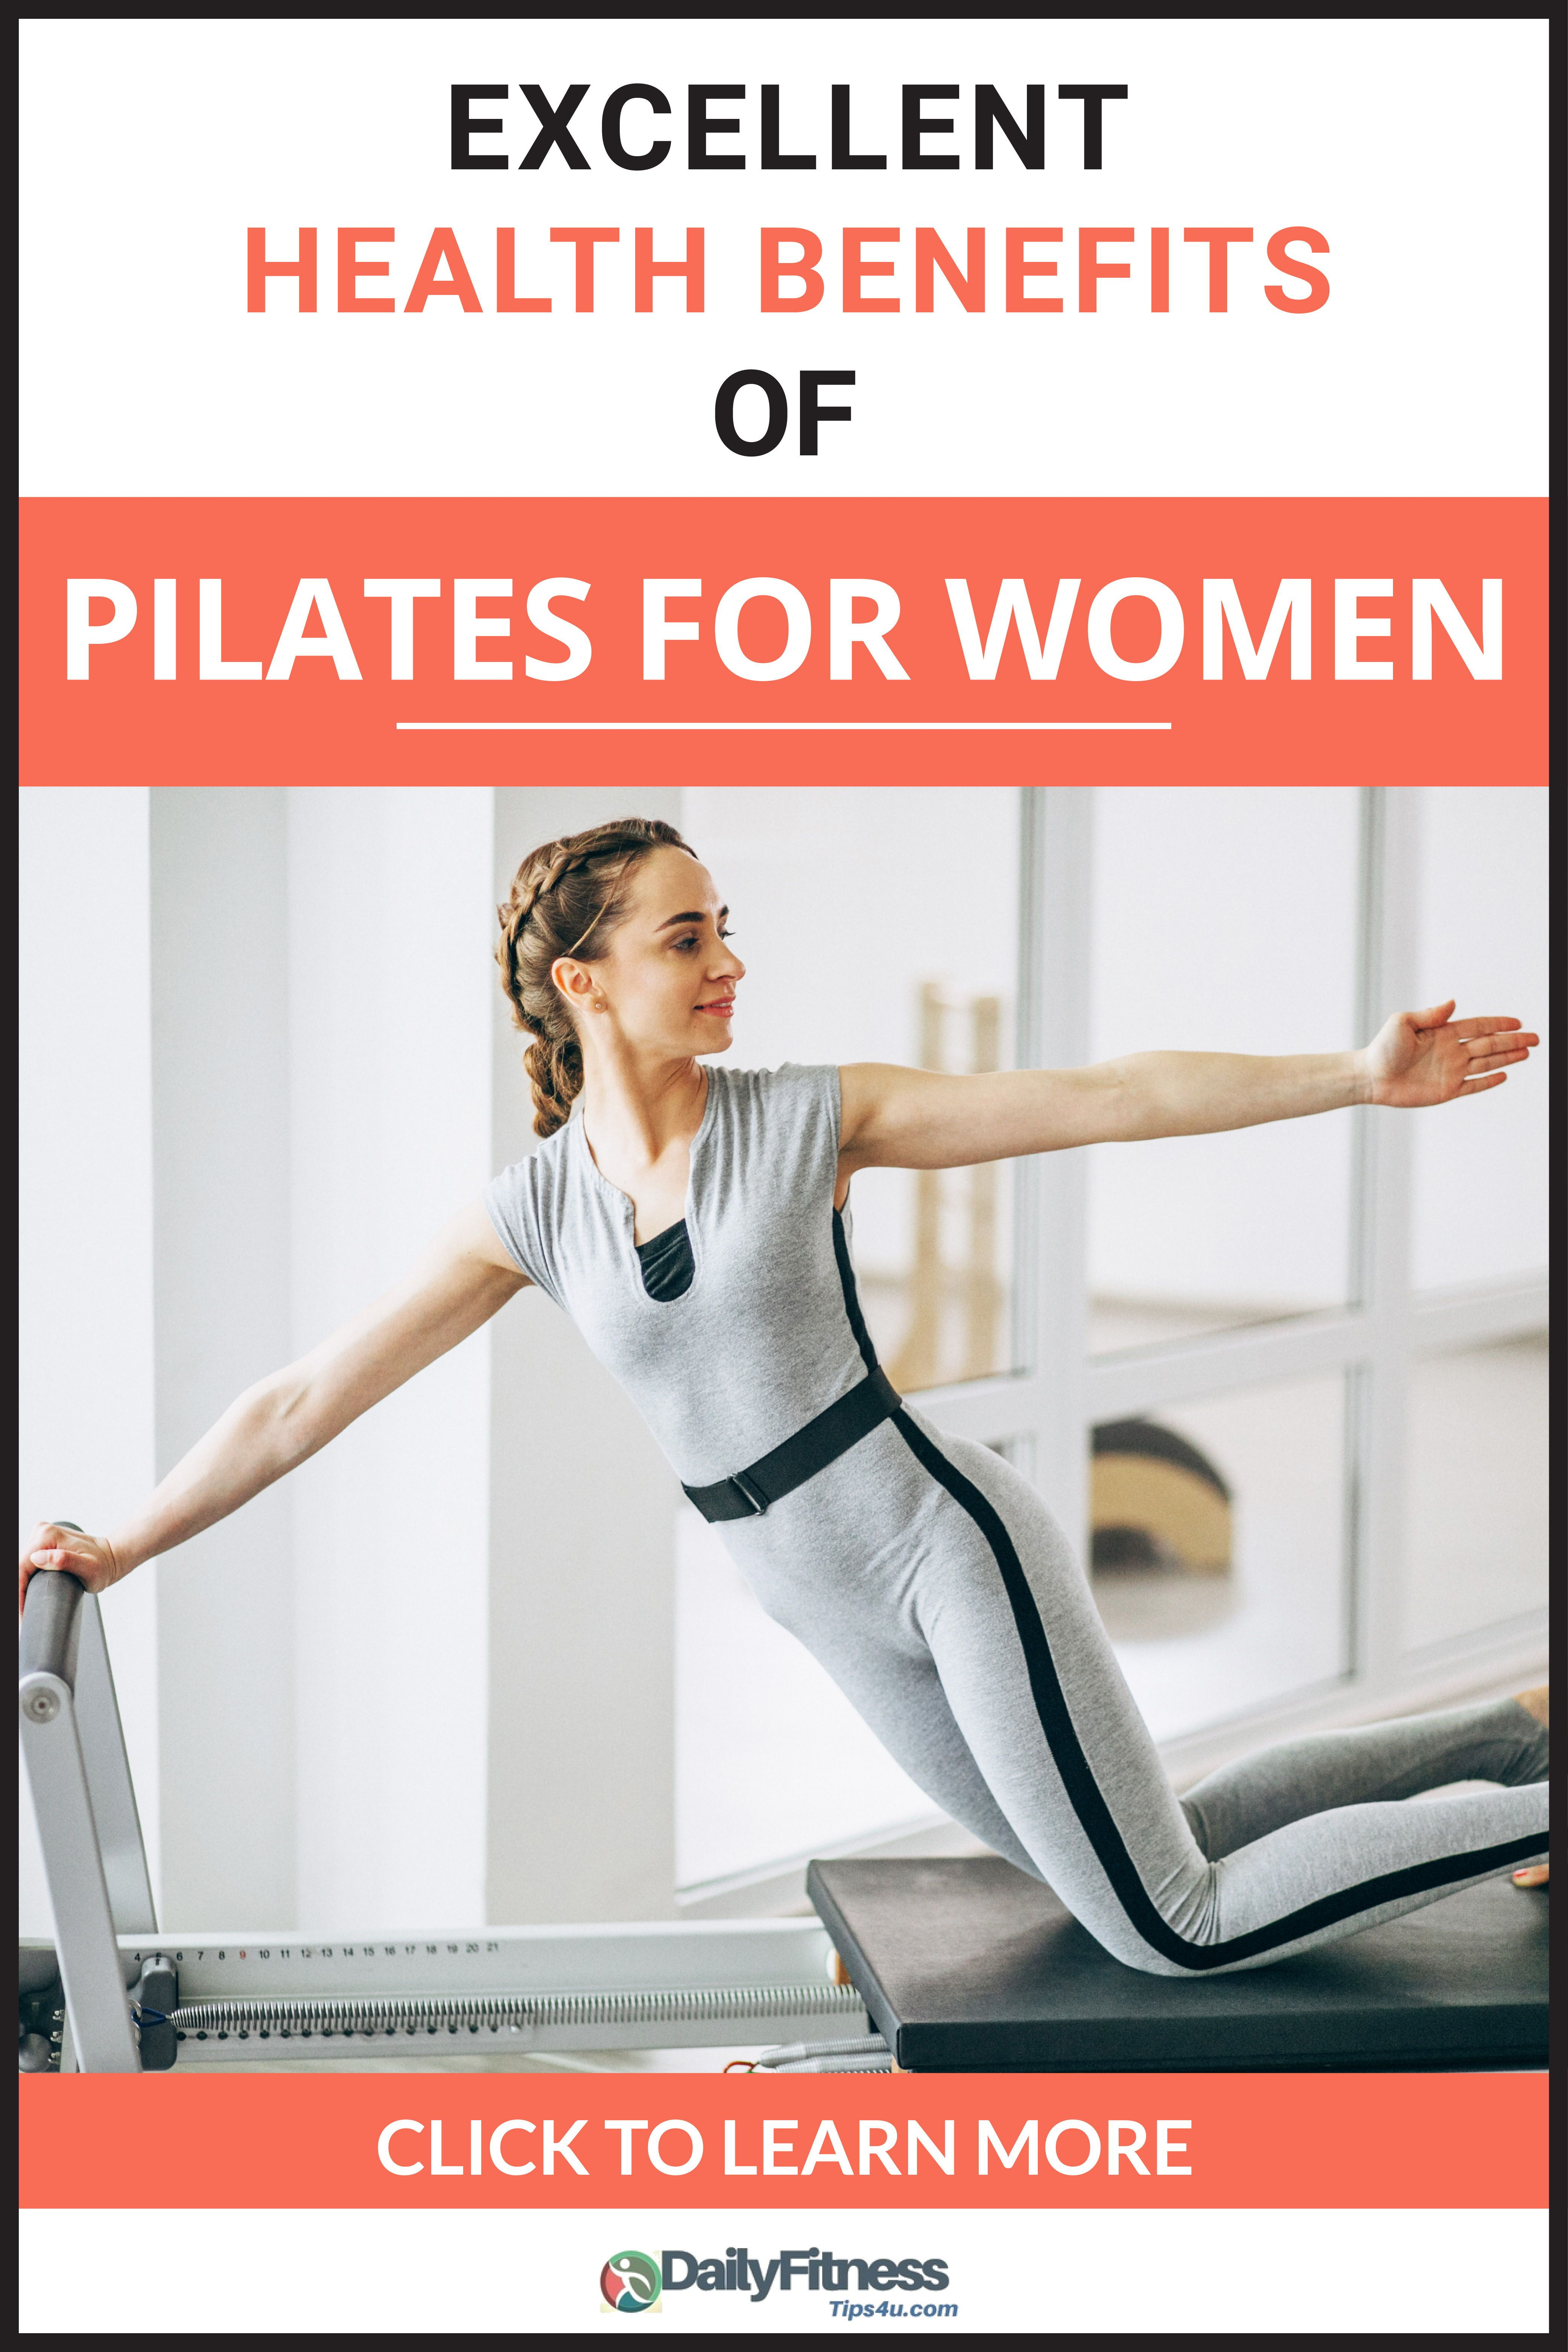 Excellent health benefits of pilates for women in 2020